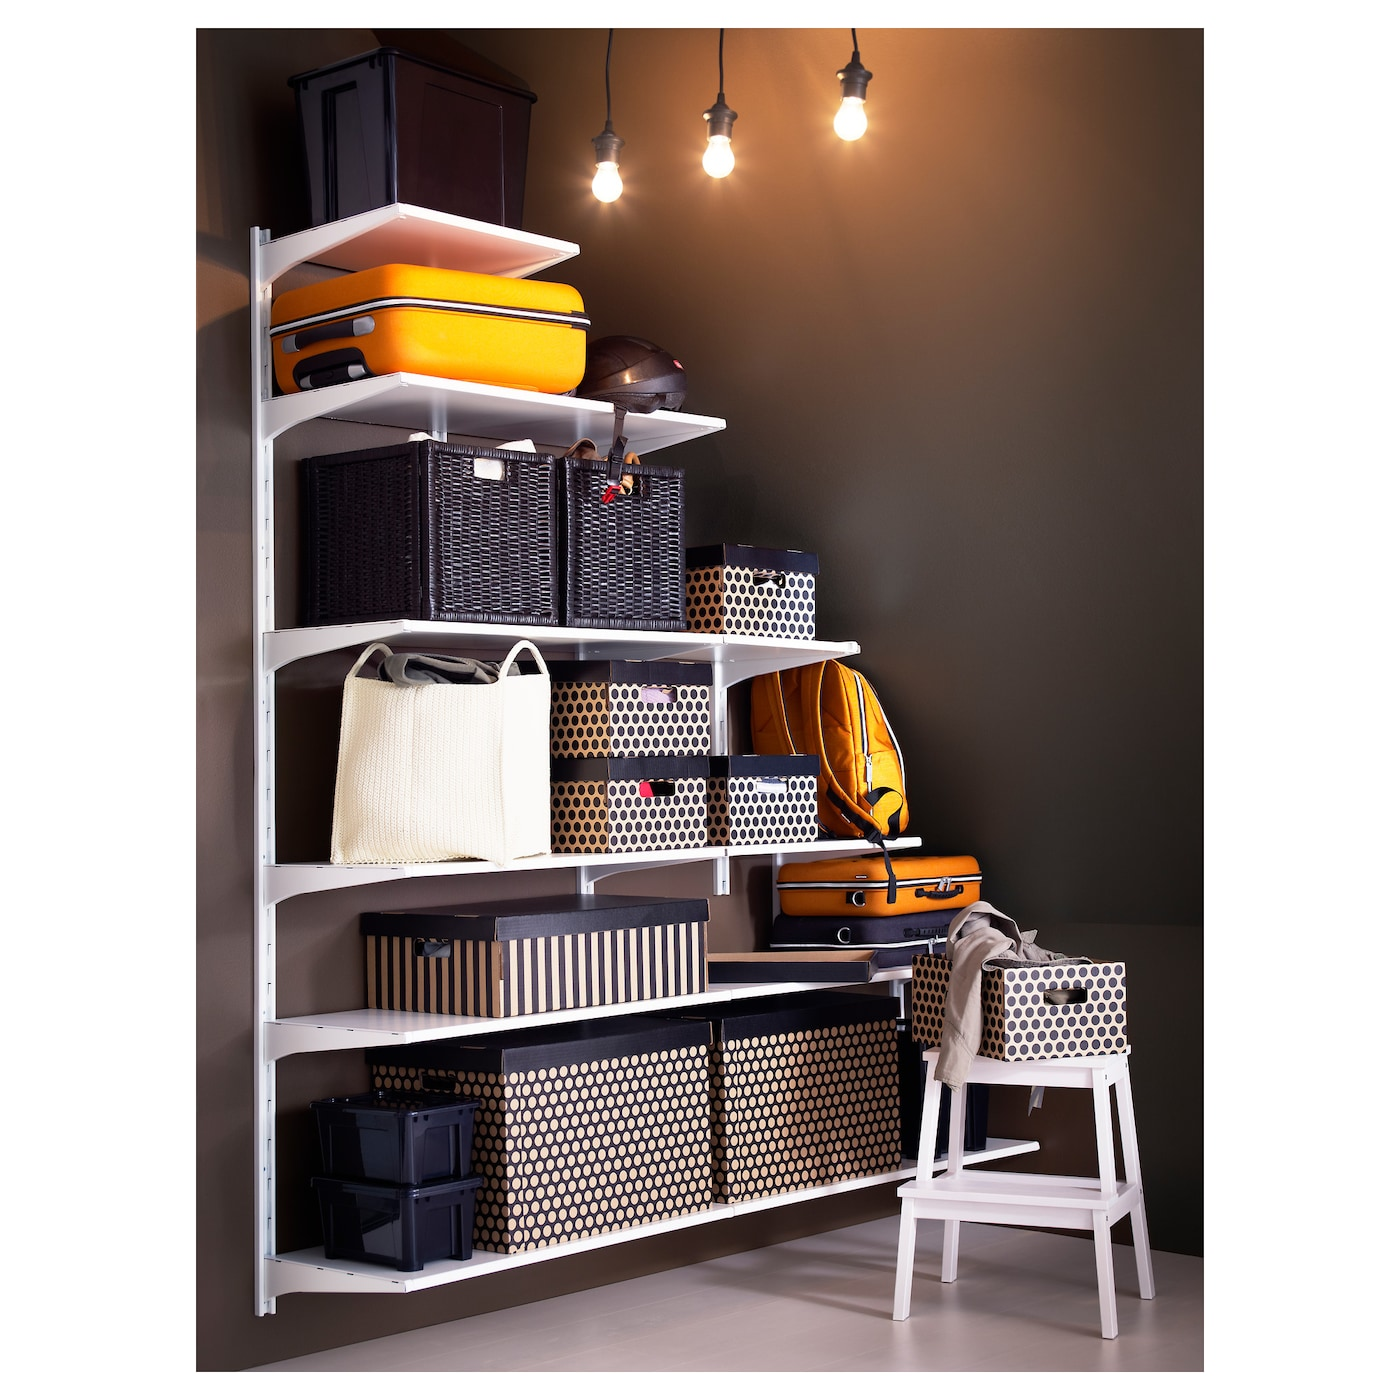 Ikea Algot Wall Upright Shelves Easy To Fit Under Stairs Or In A Room With